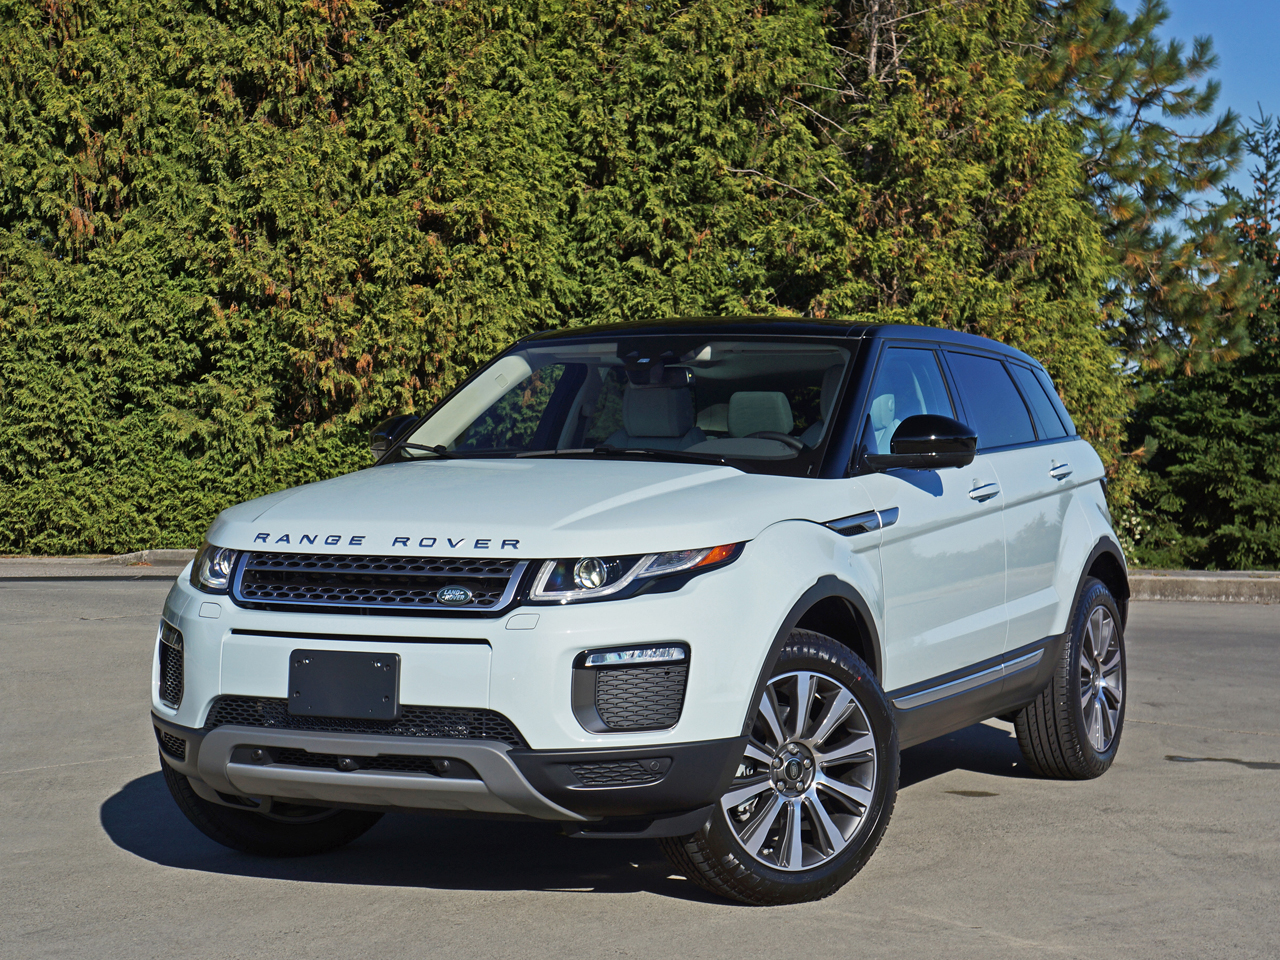 2016 range rover evoque hse si4 road test review carcostcanada. Black Bedroom Furniture Sets. Home Design Ideas